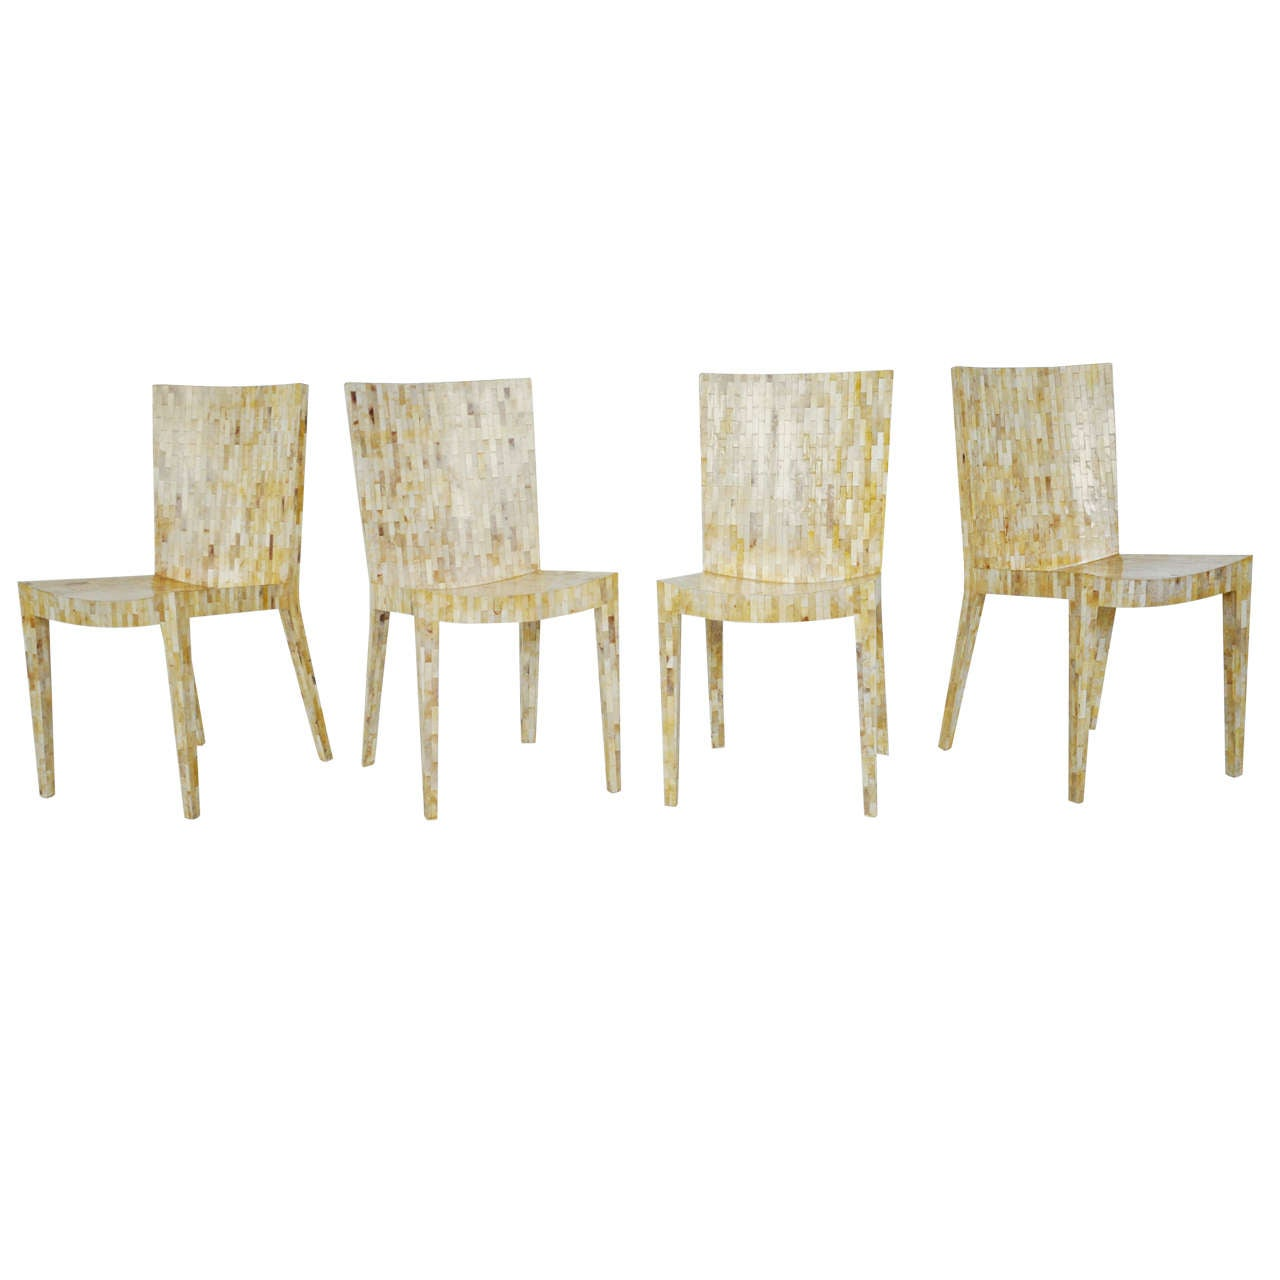 Karl Springer JMF Chairs 1